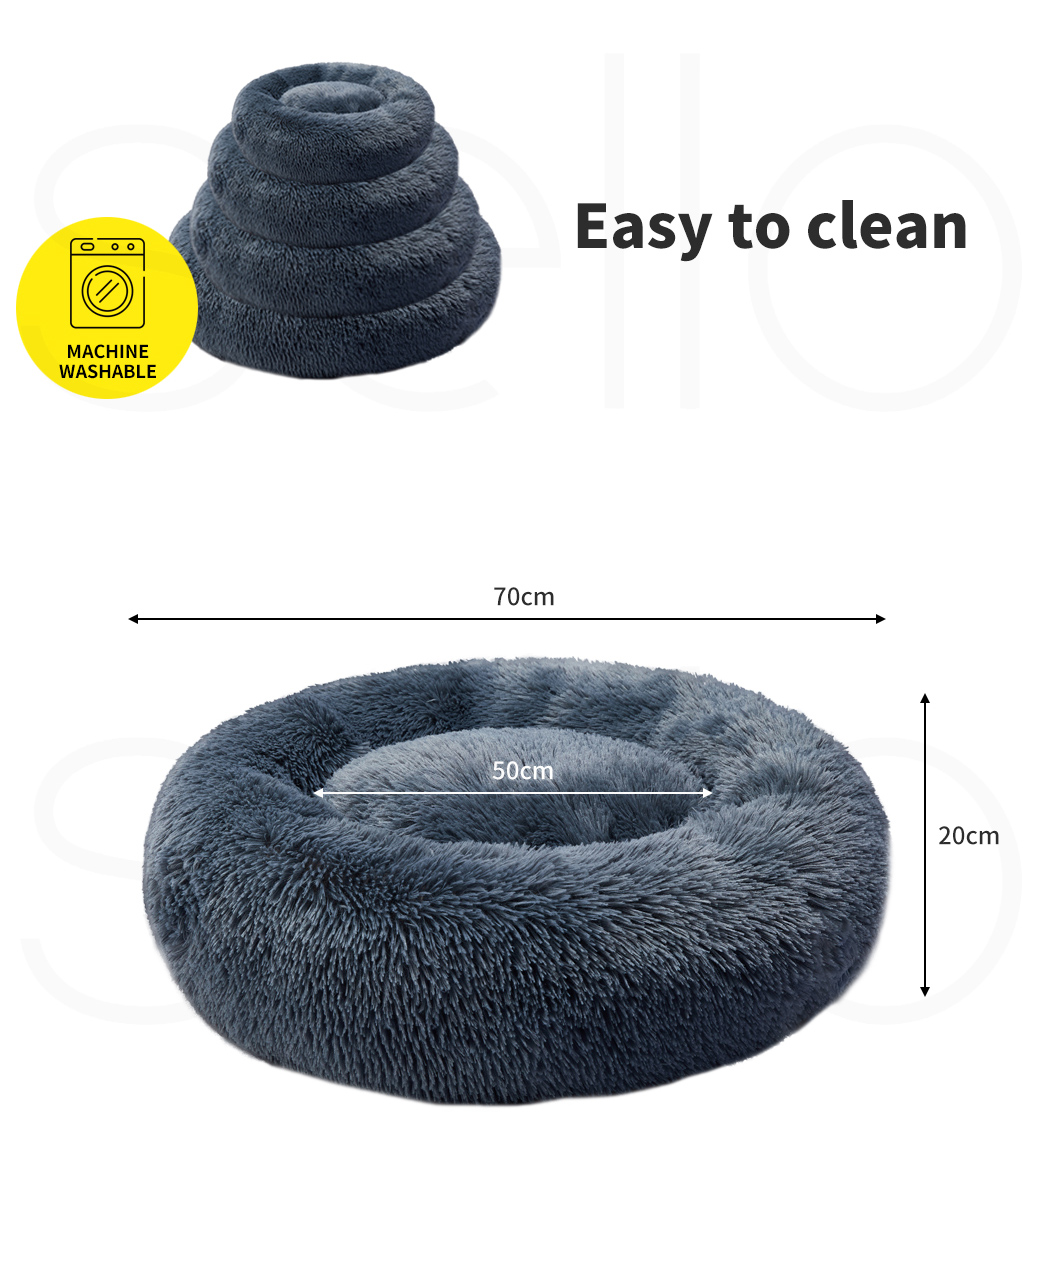 thumbnail 31 - PaWz Dog Calming Bed Cat Cave Pet Nest Soft Plush Warm Comfy Kennel Extra Large